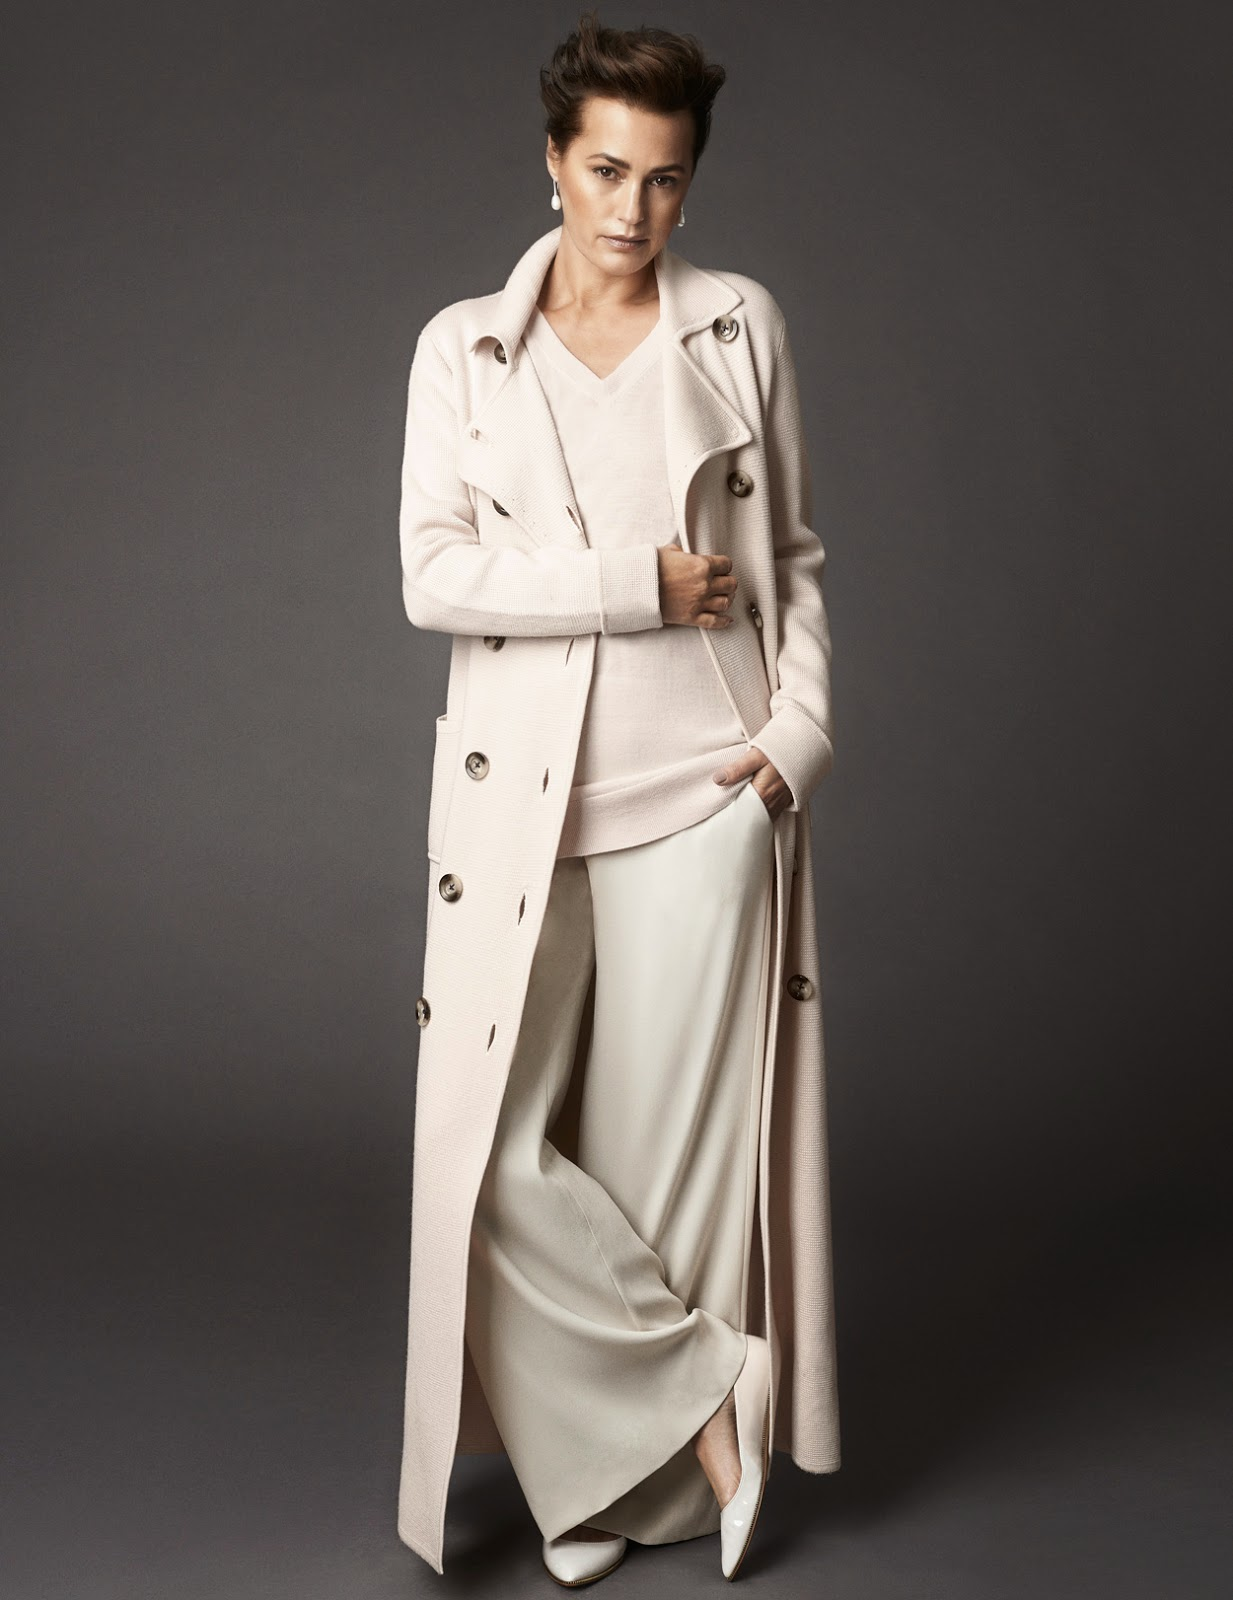 Yasmin Le Bon in a Winser London Milano coat